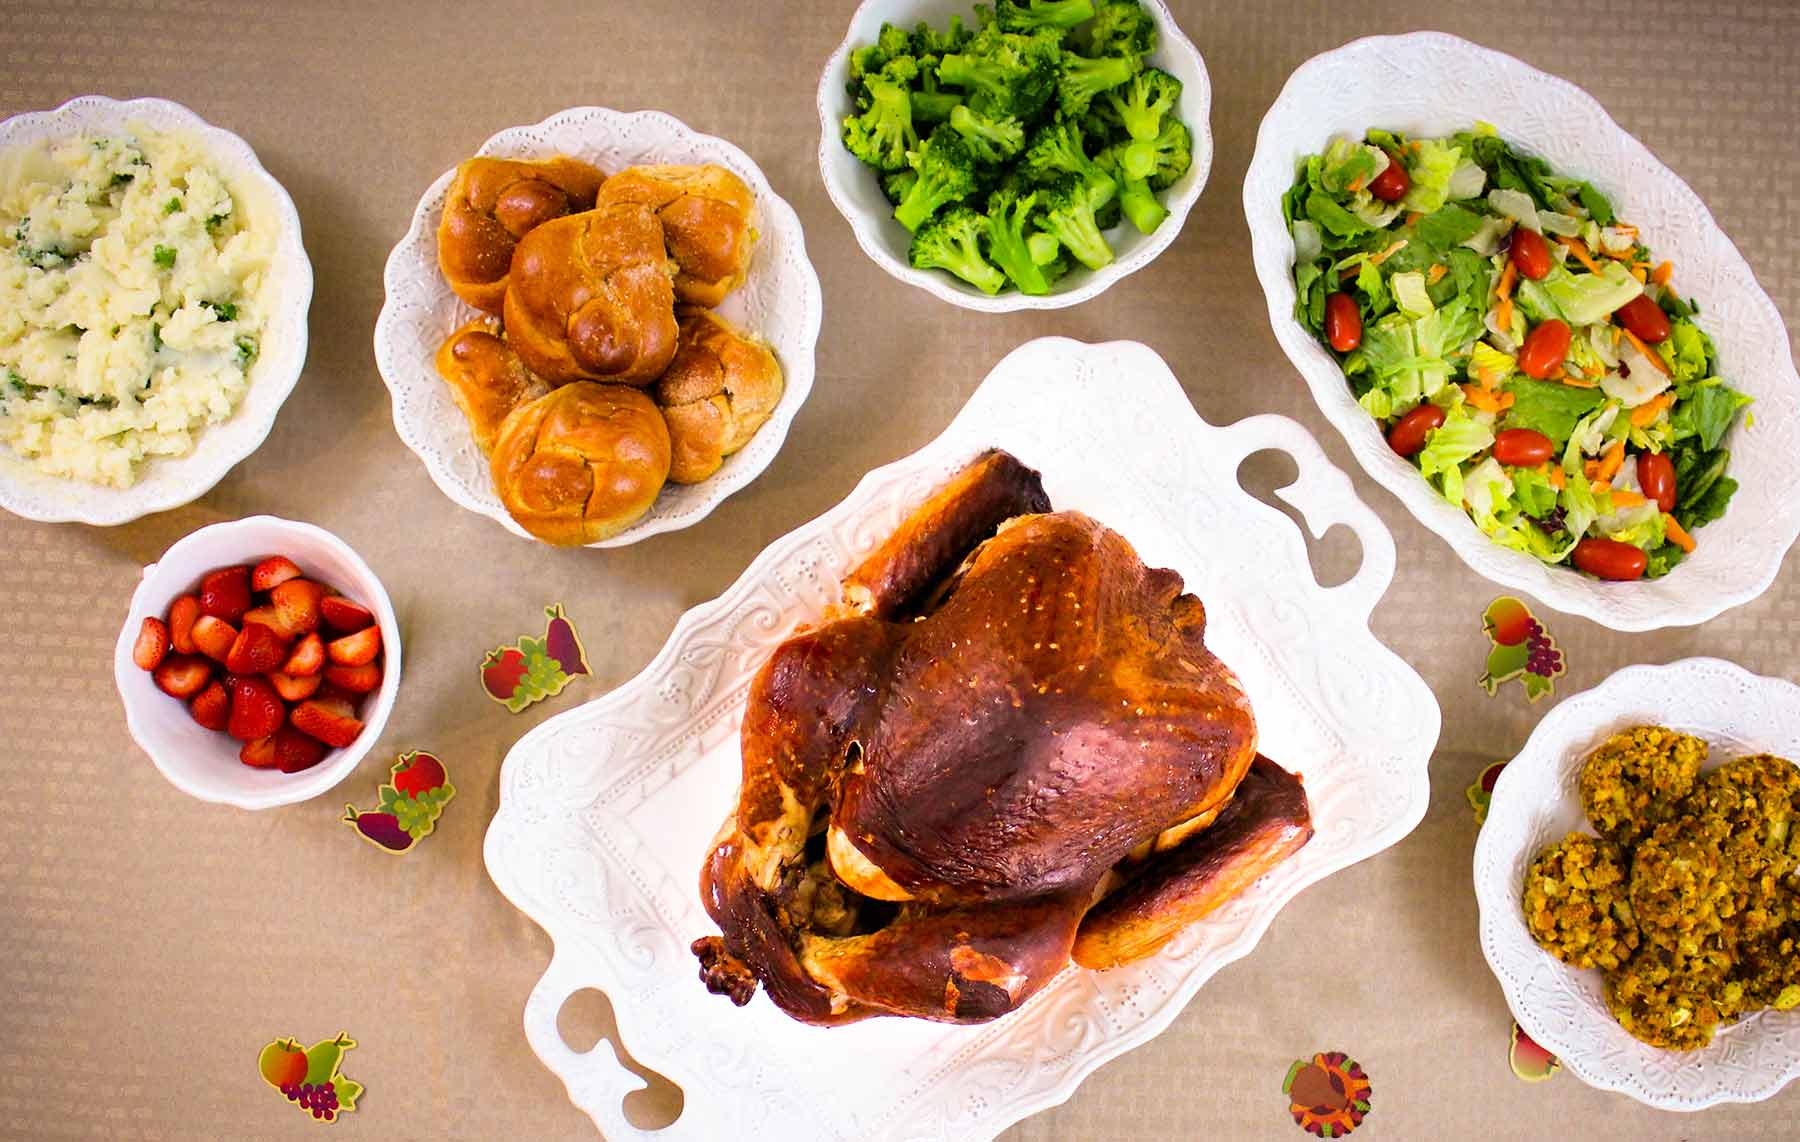 From quick money-saving dinners you'll have to make to believe to leisurely Sunday suppers with your extended family and friends, Betty Crocker loves to bring people together through memorable dinners and has thousands of creative recipes and meal planning tips to help make it really easy.